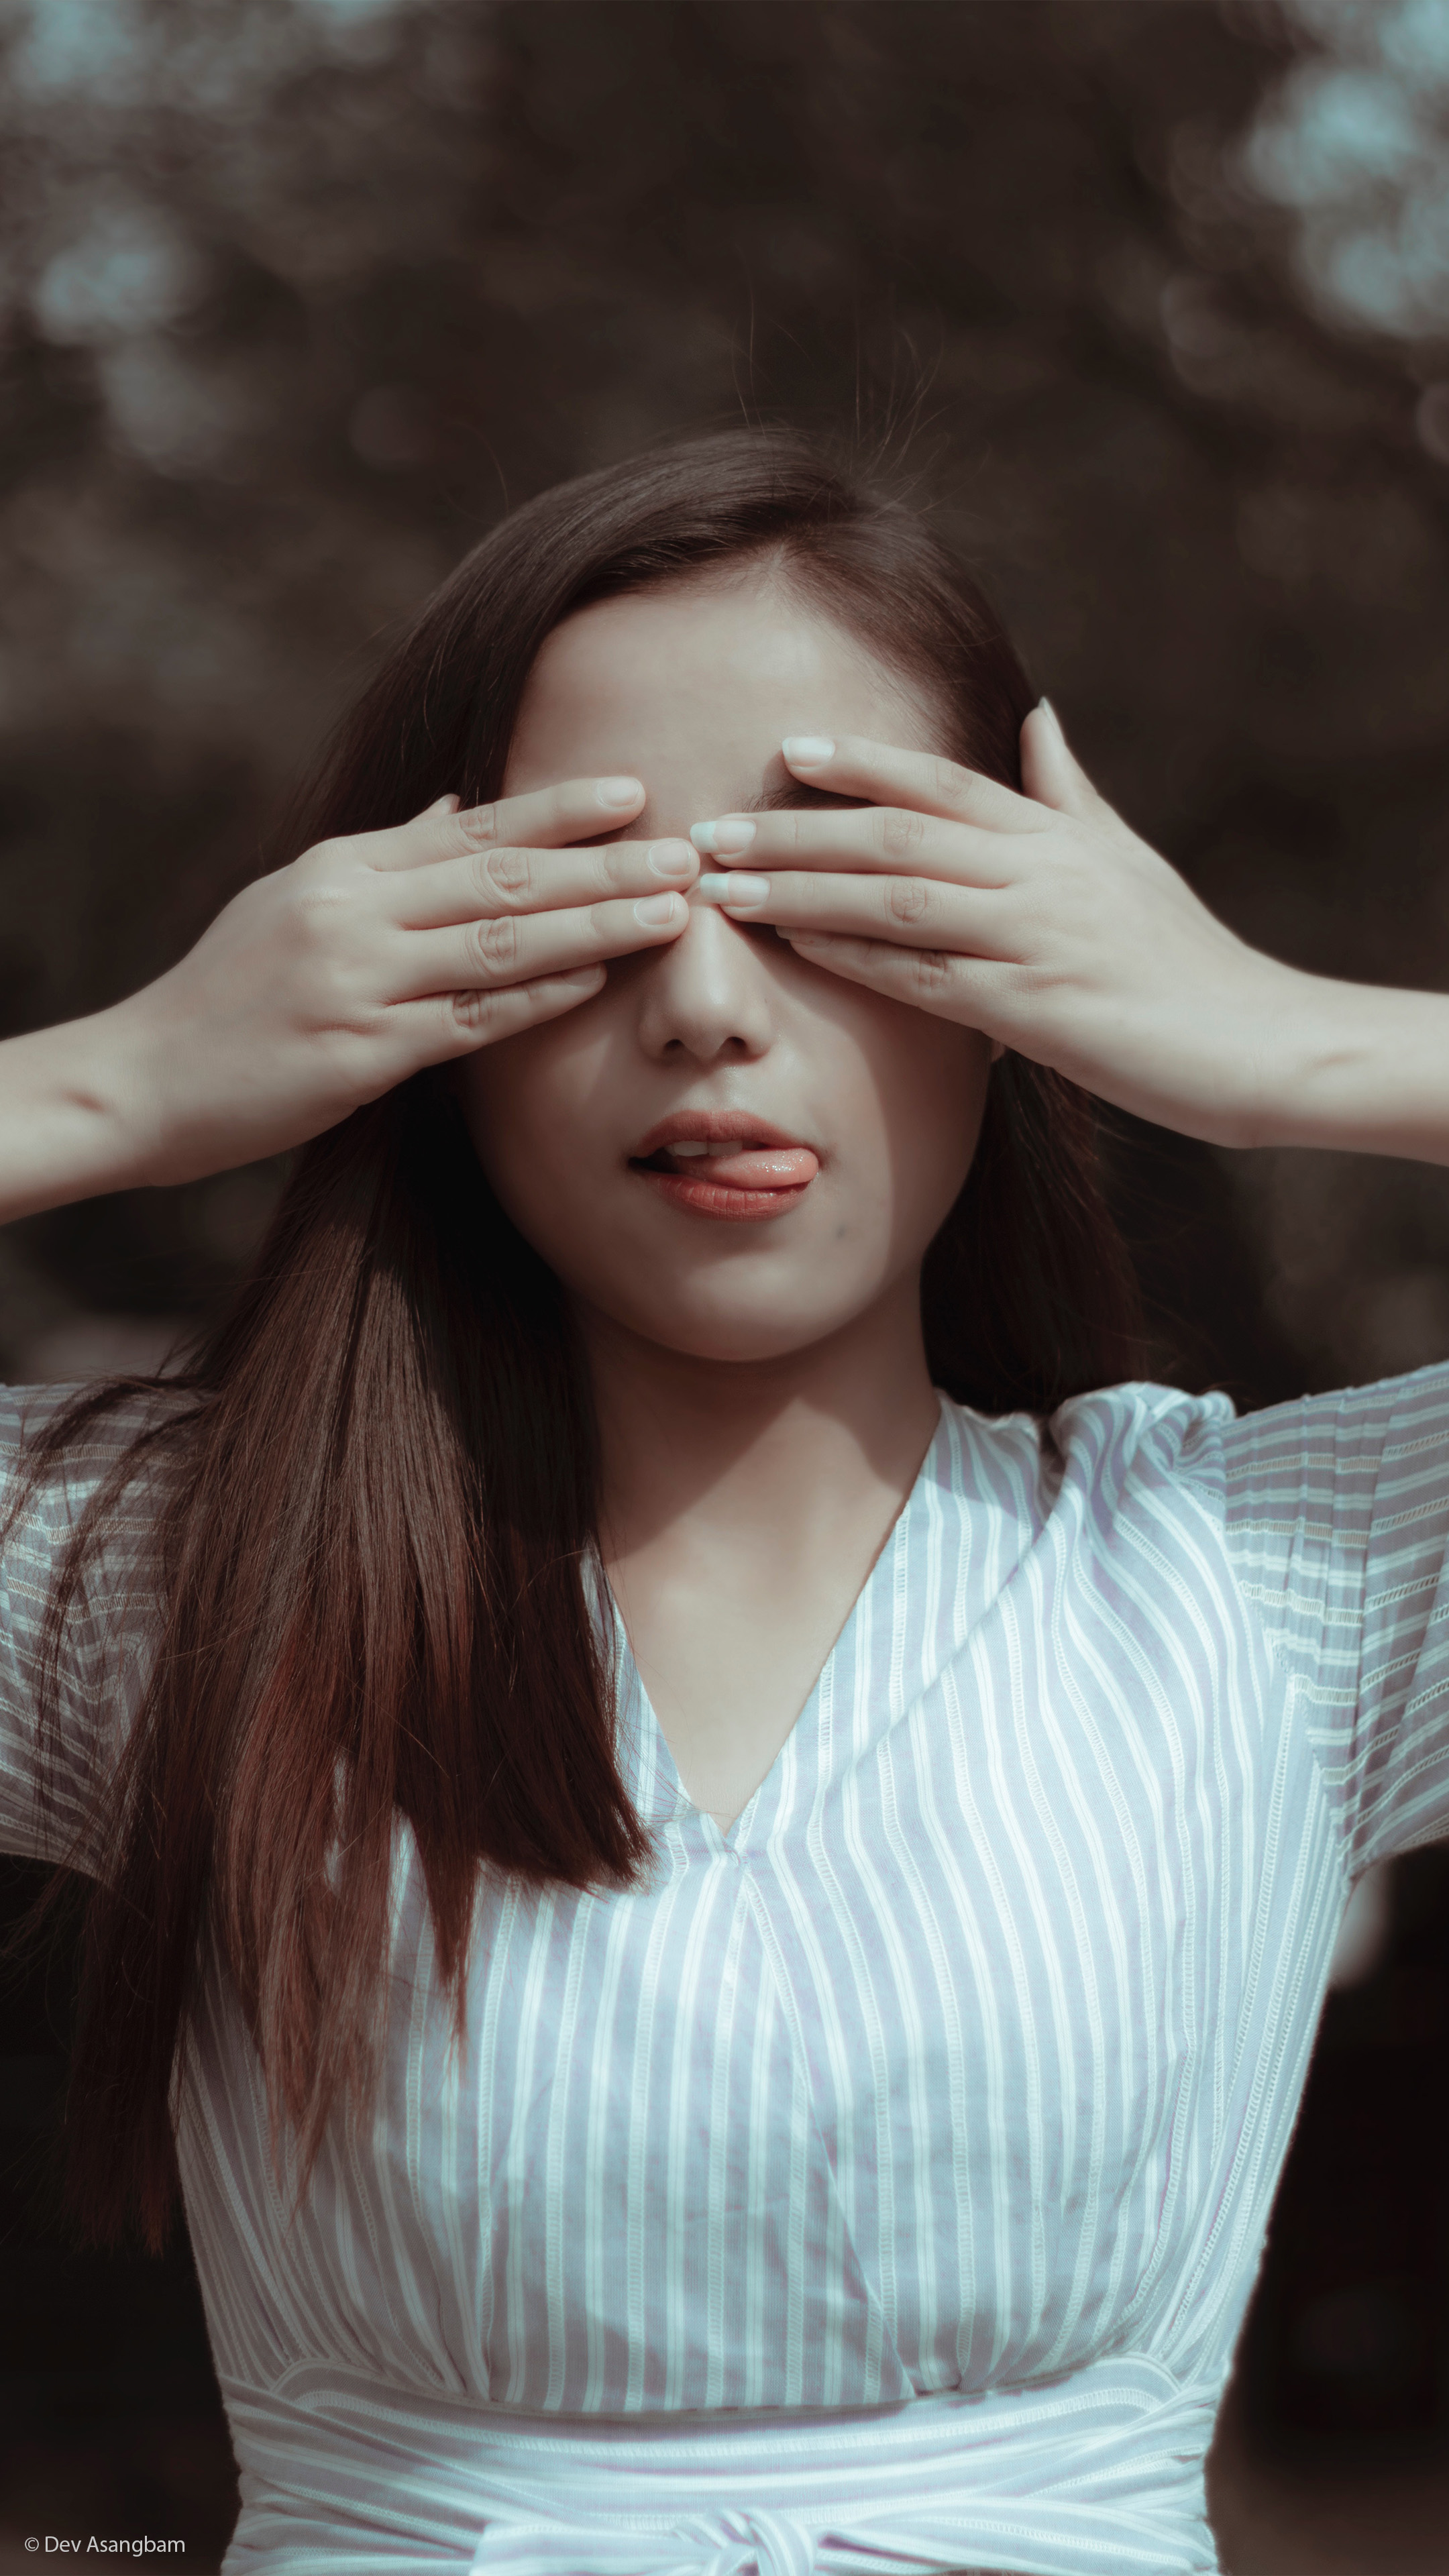 North East Girl Closing Eyes With Hand 4k Ultra Hd Mobile Wallpaper